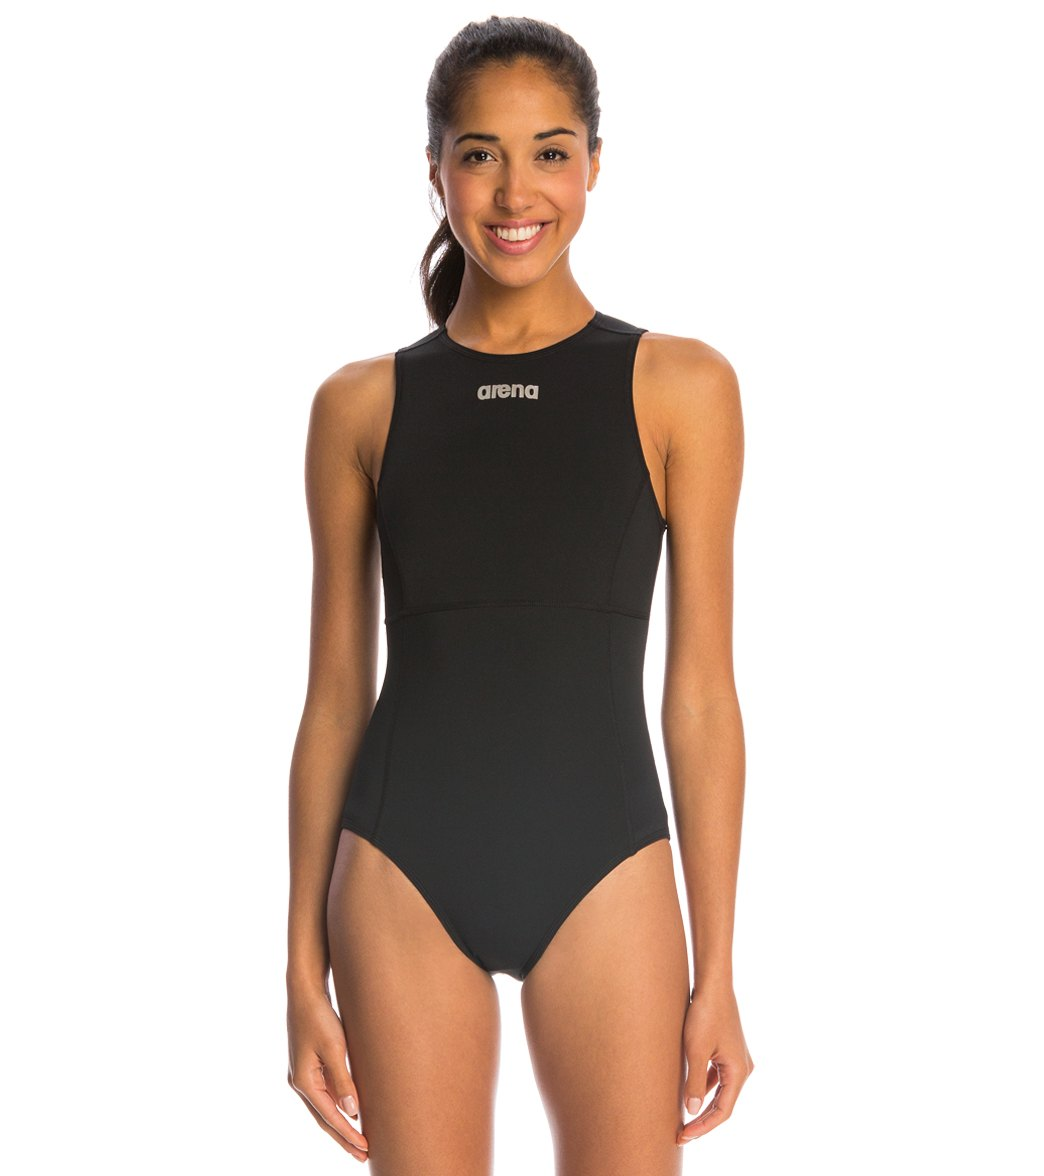 ARENA Female Mission Water Polo One Piece - Waternity 59111